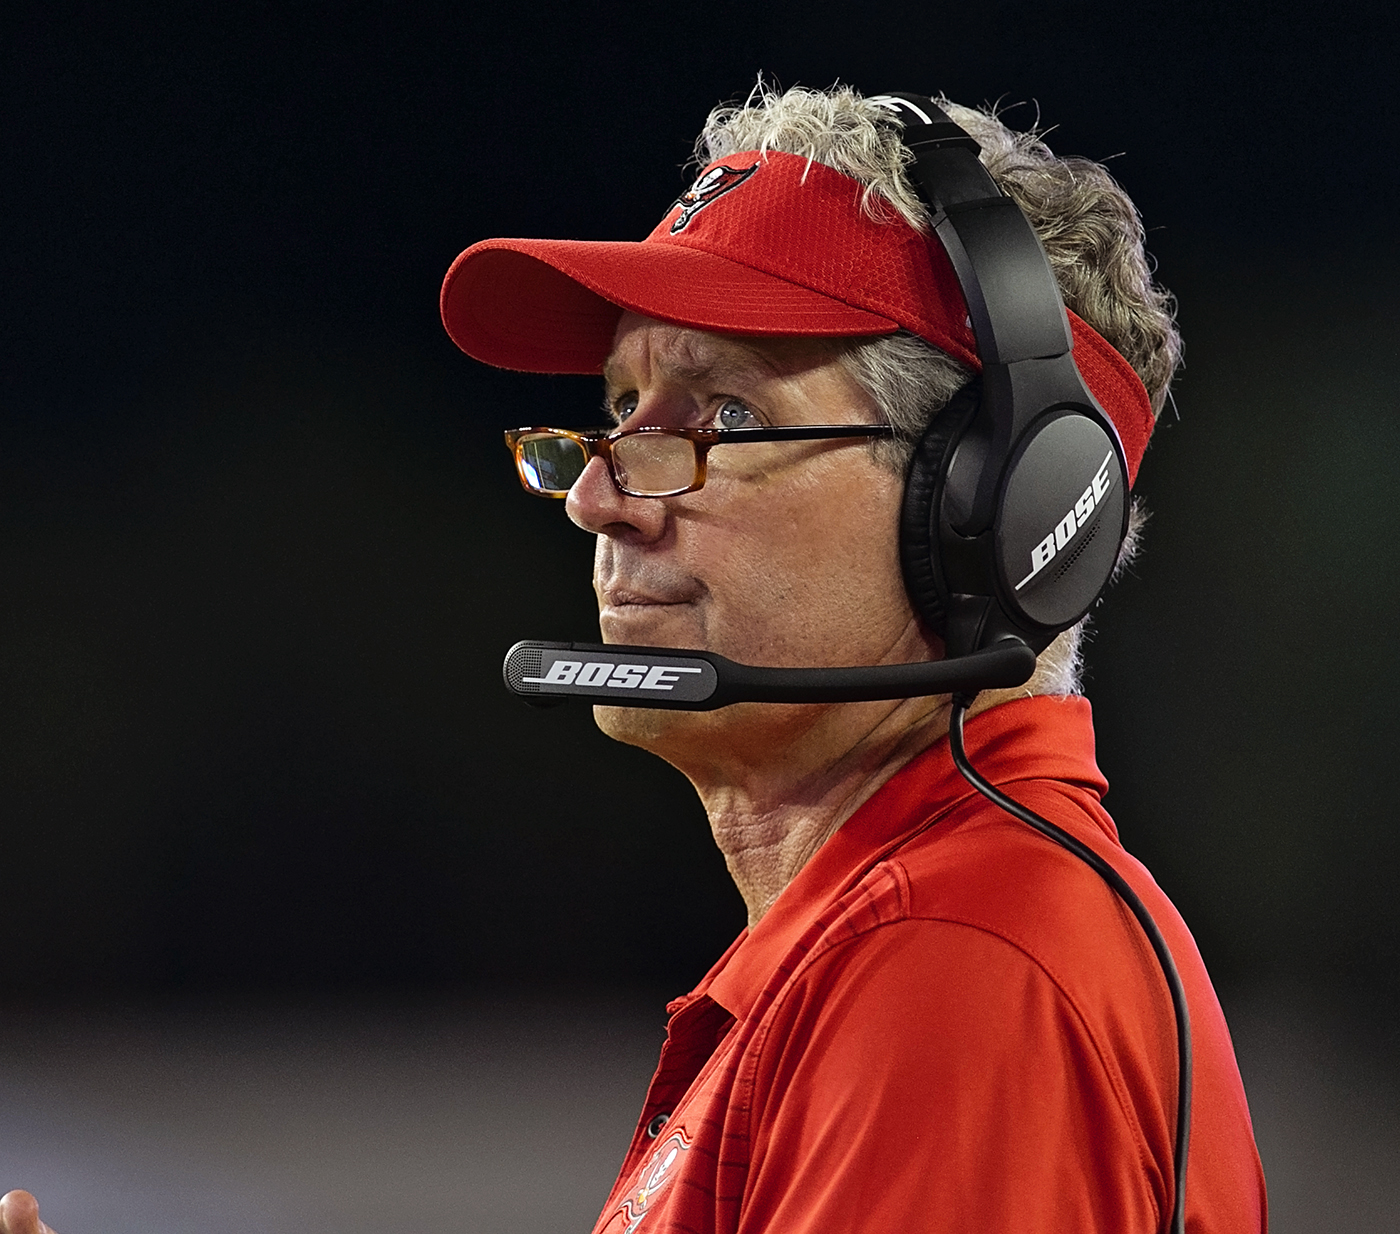 Koetter admits his team wasn't ready to play./CARMEN MANDATO